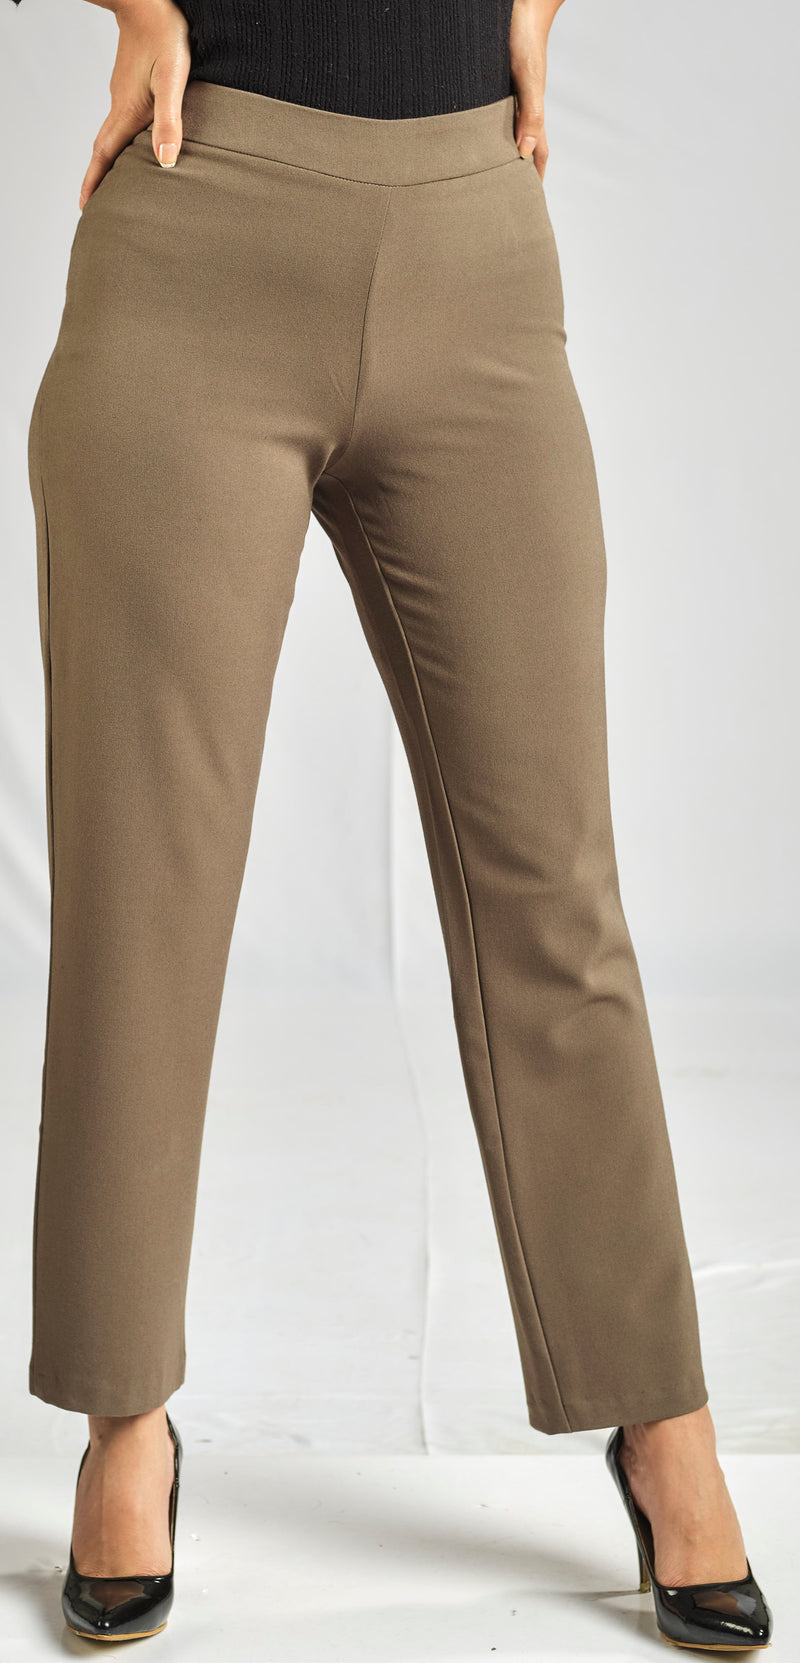 OLIVE GREEN TAILLURE PANTS WITH ELASTIC WAIST FOR EXTRA COMFORT